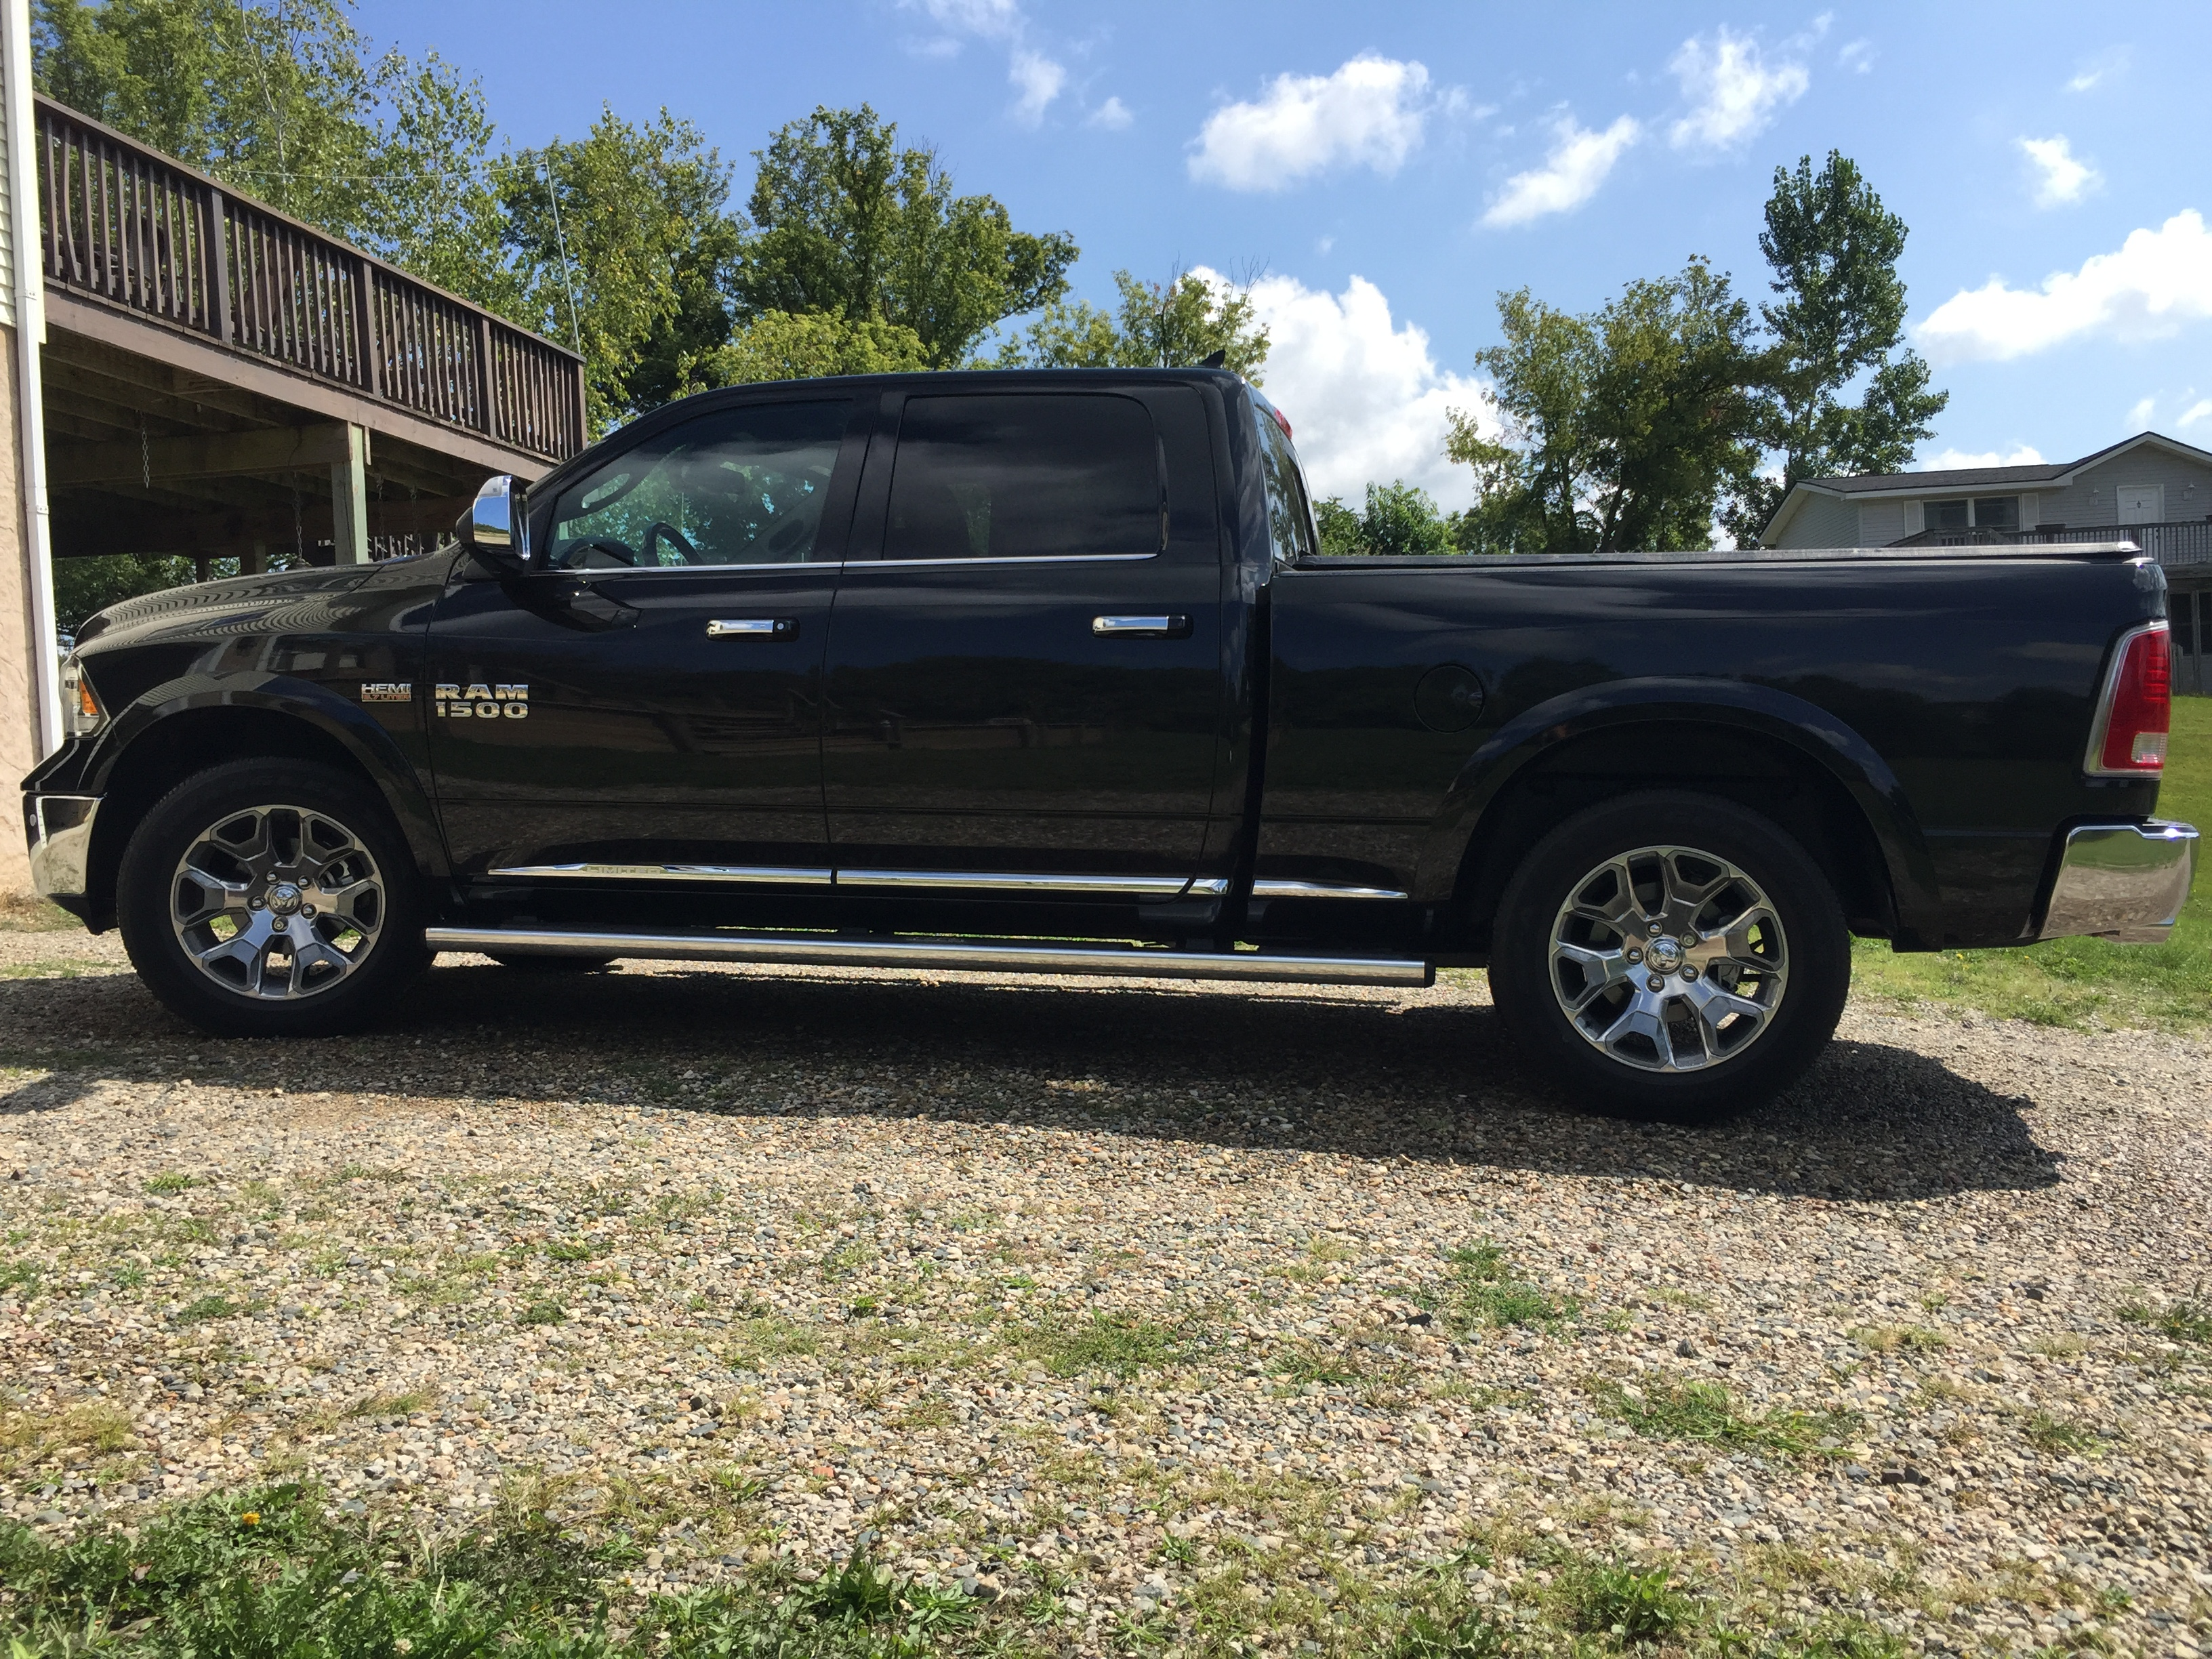 fs 2017 ram 1500 limited wheels and goodyear tires with. Black Bedroom Furniture Sets. Home Design Ideas